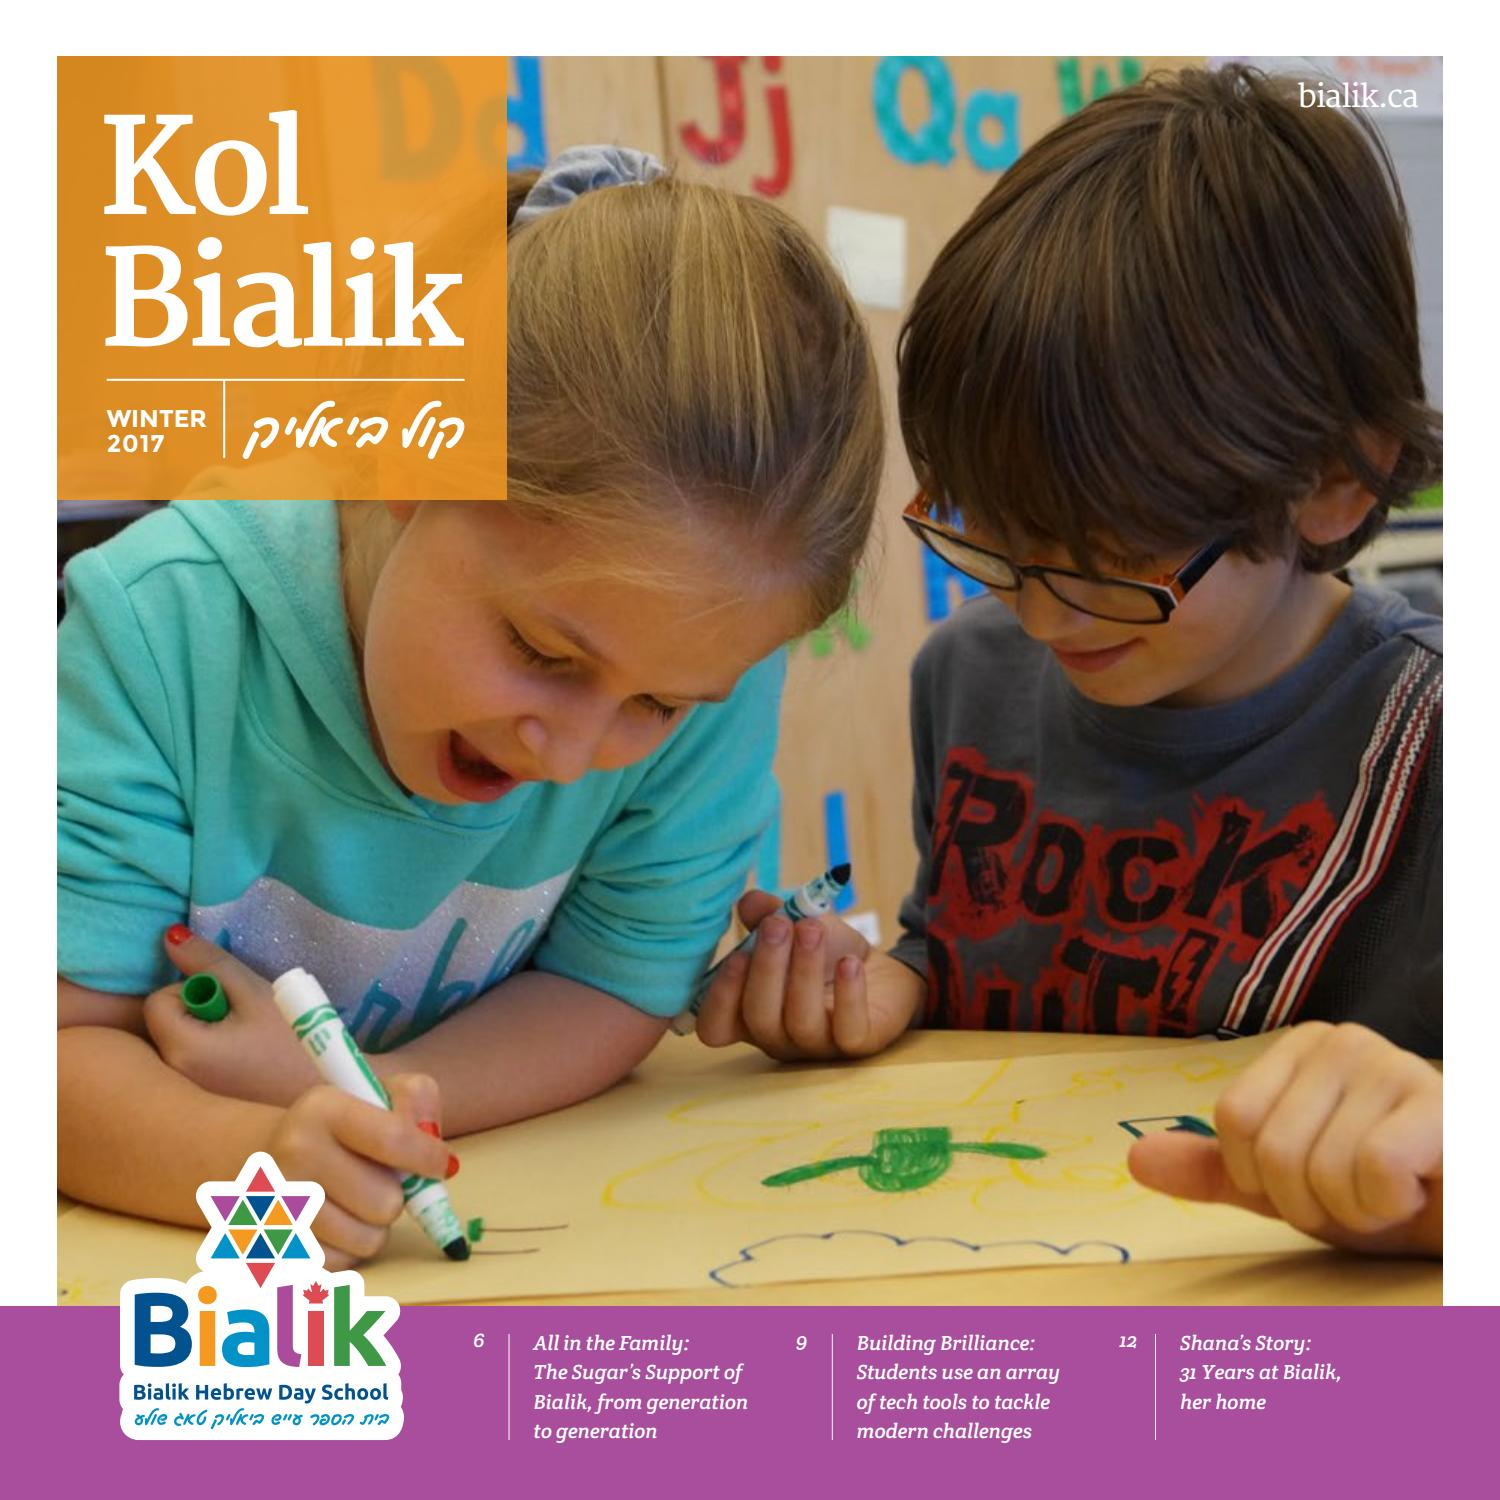 kol bialik winter 2016 by bialik hebrew day school issuu kol bialik winter 2017